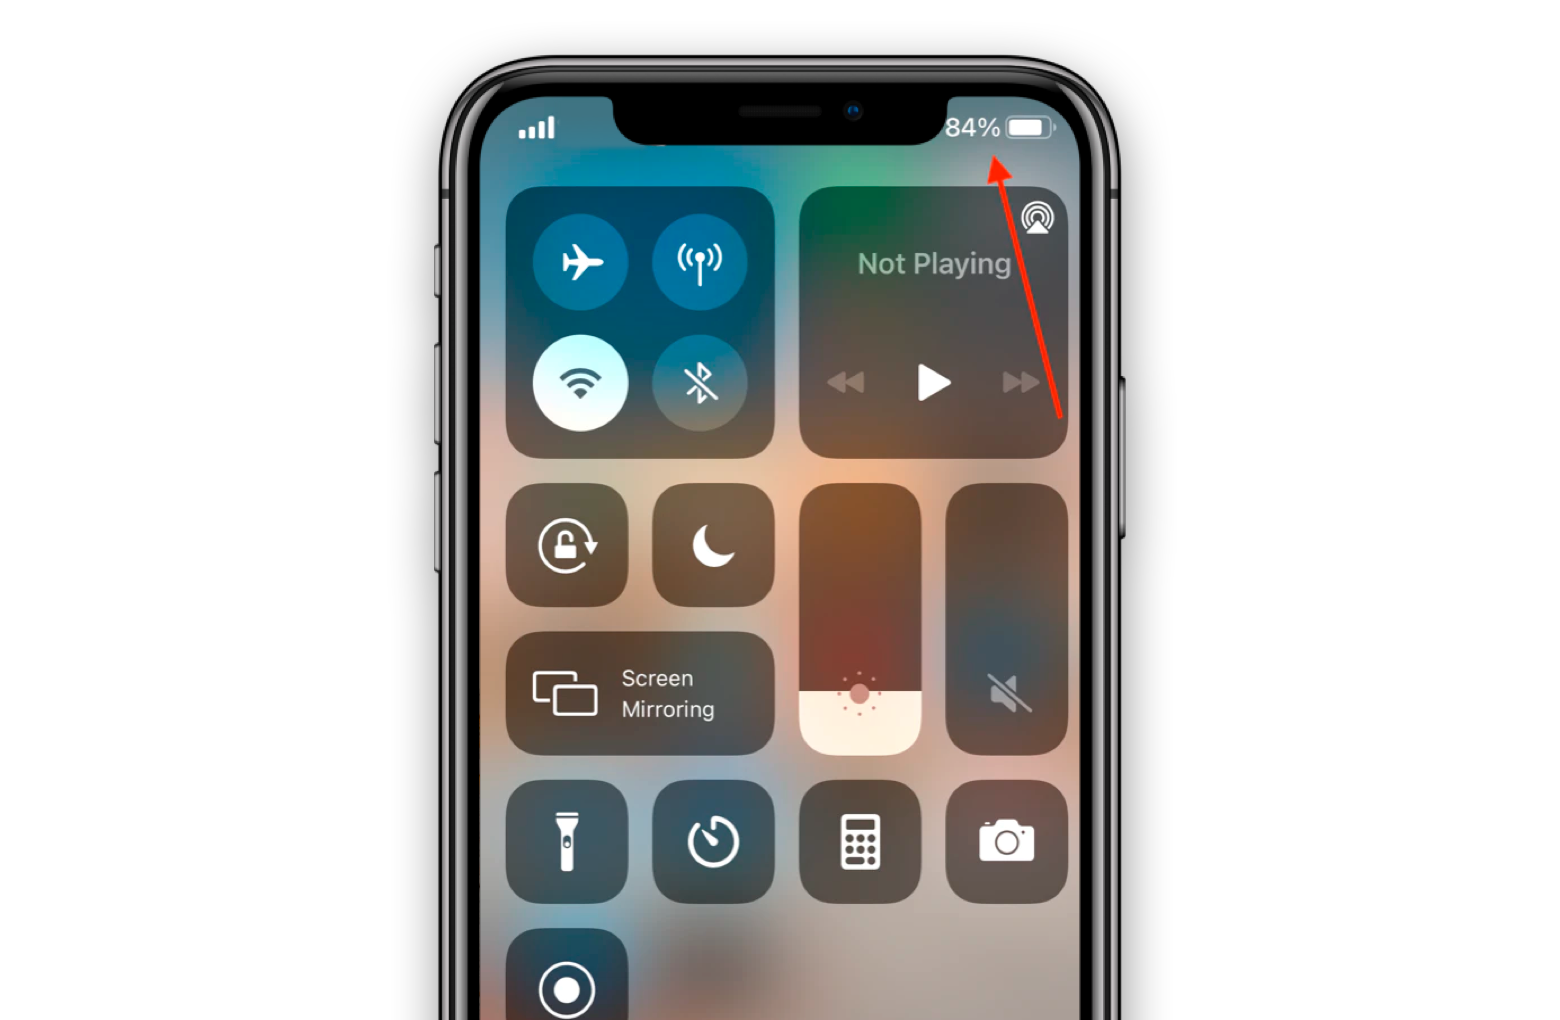 control center from the top